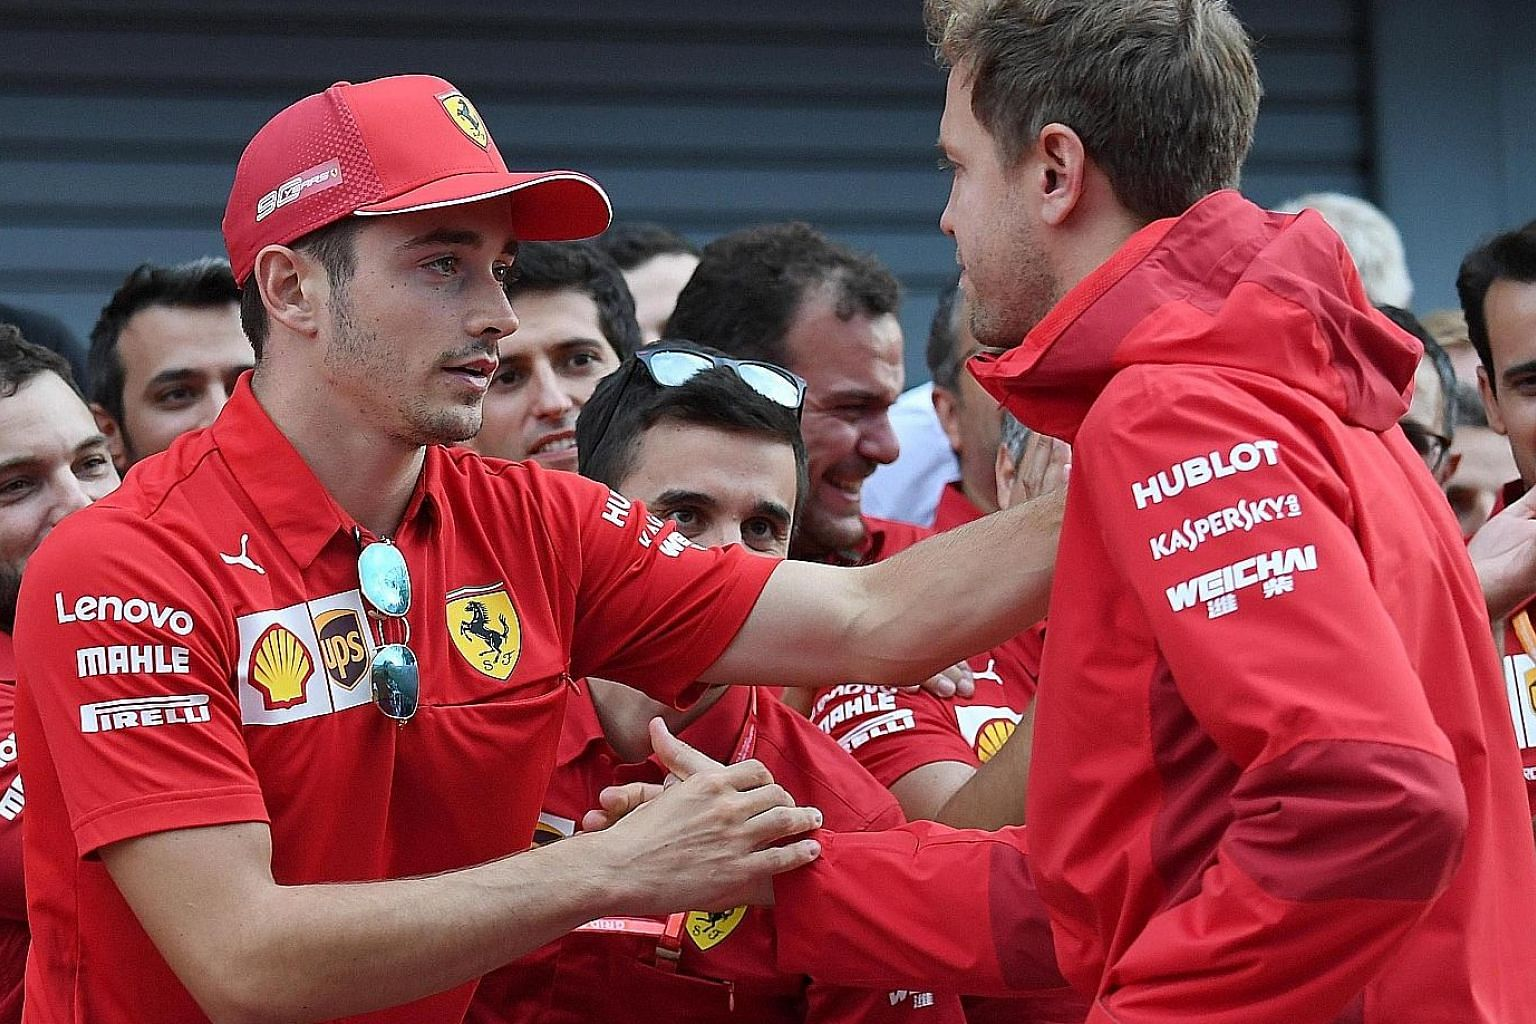 Ferrari's Charles Leclerc (left), on 182 points, has moved ahead of his teammate Sebastian Vettel (169) in the Formula One drivers' standings.